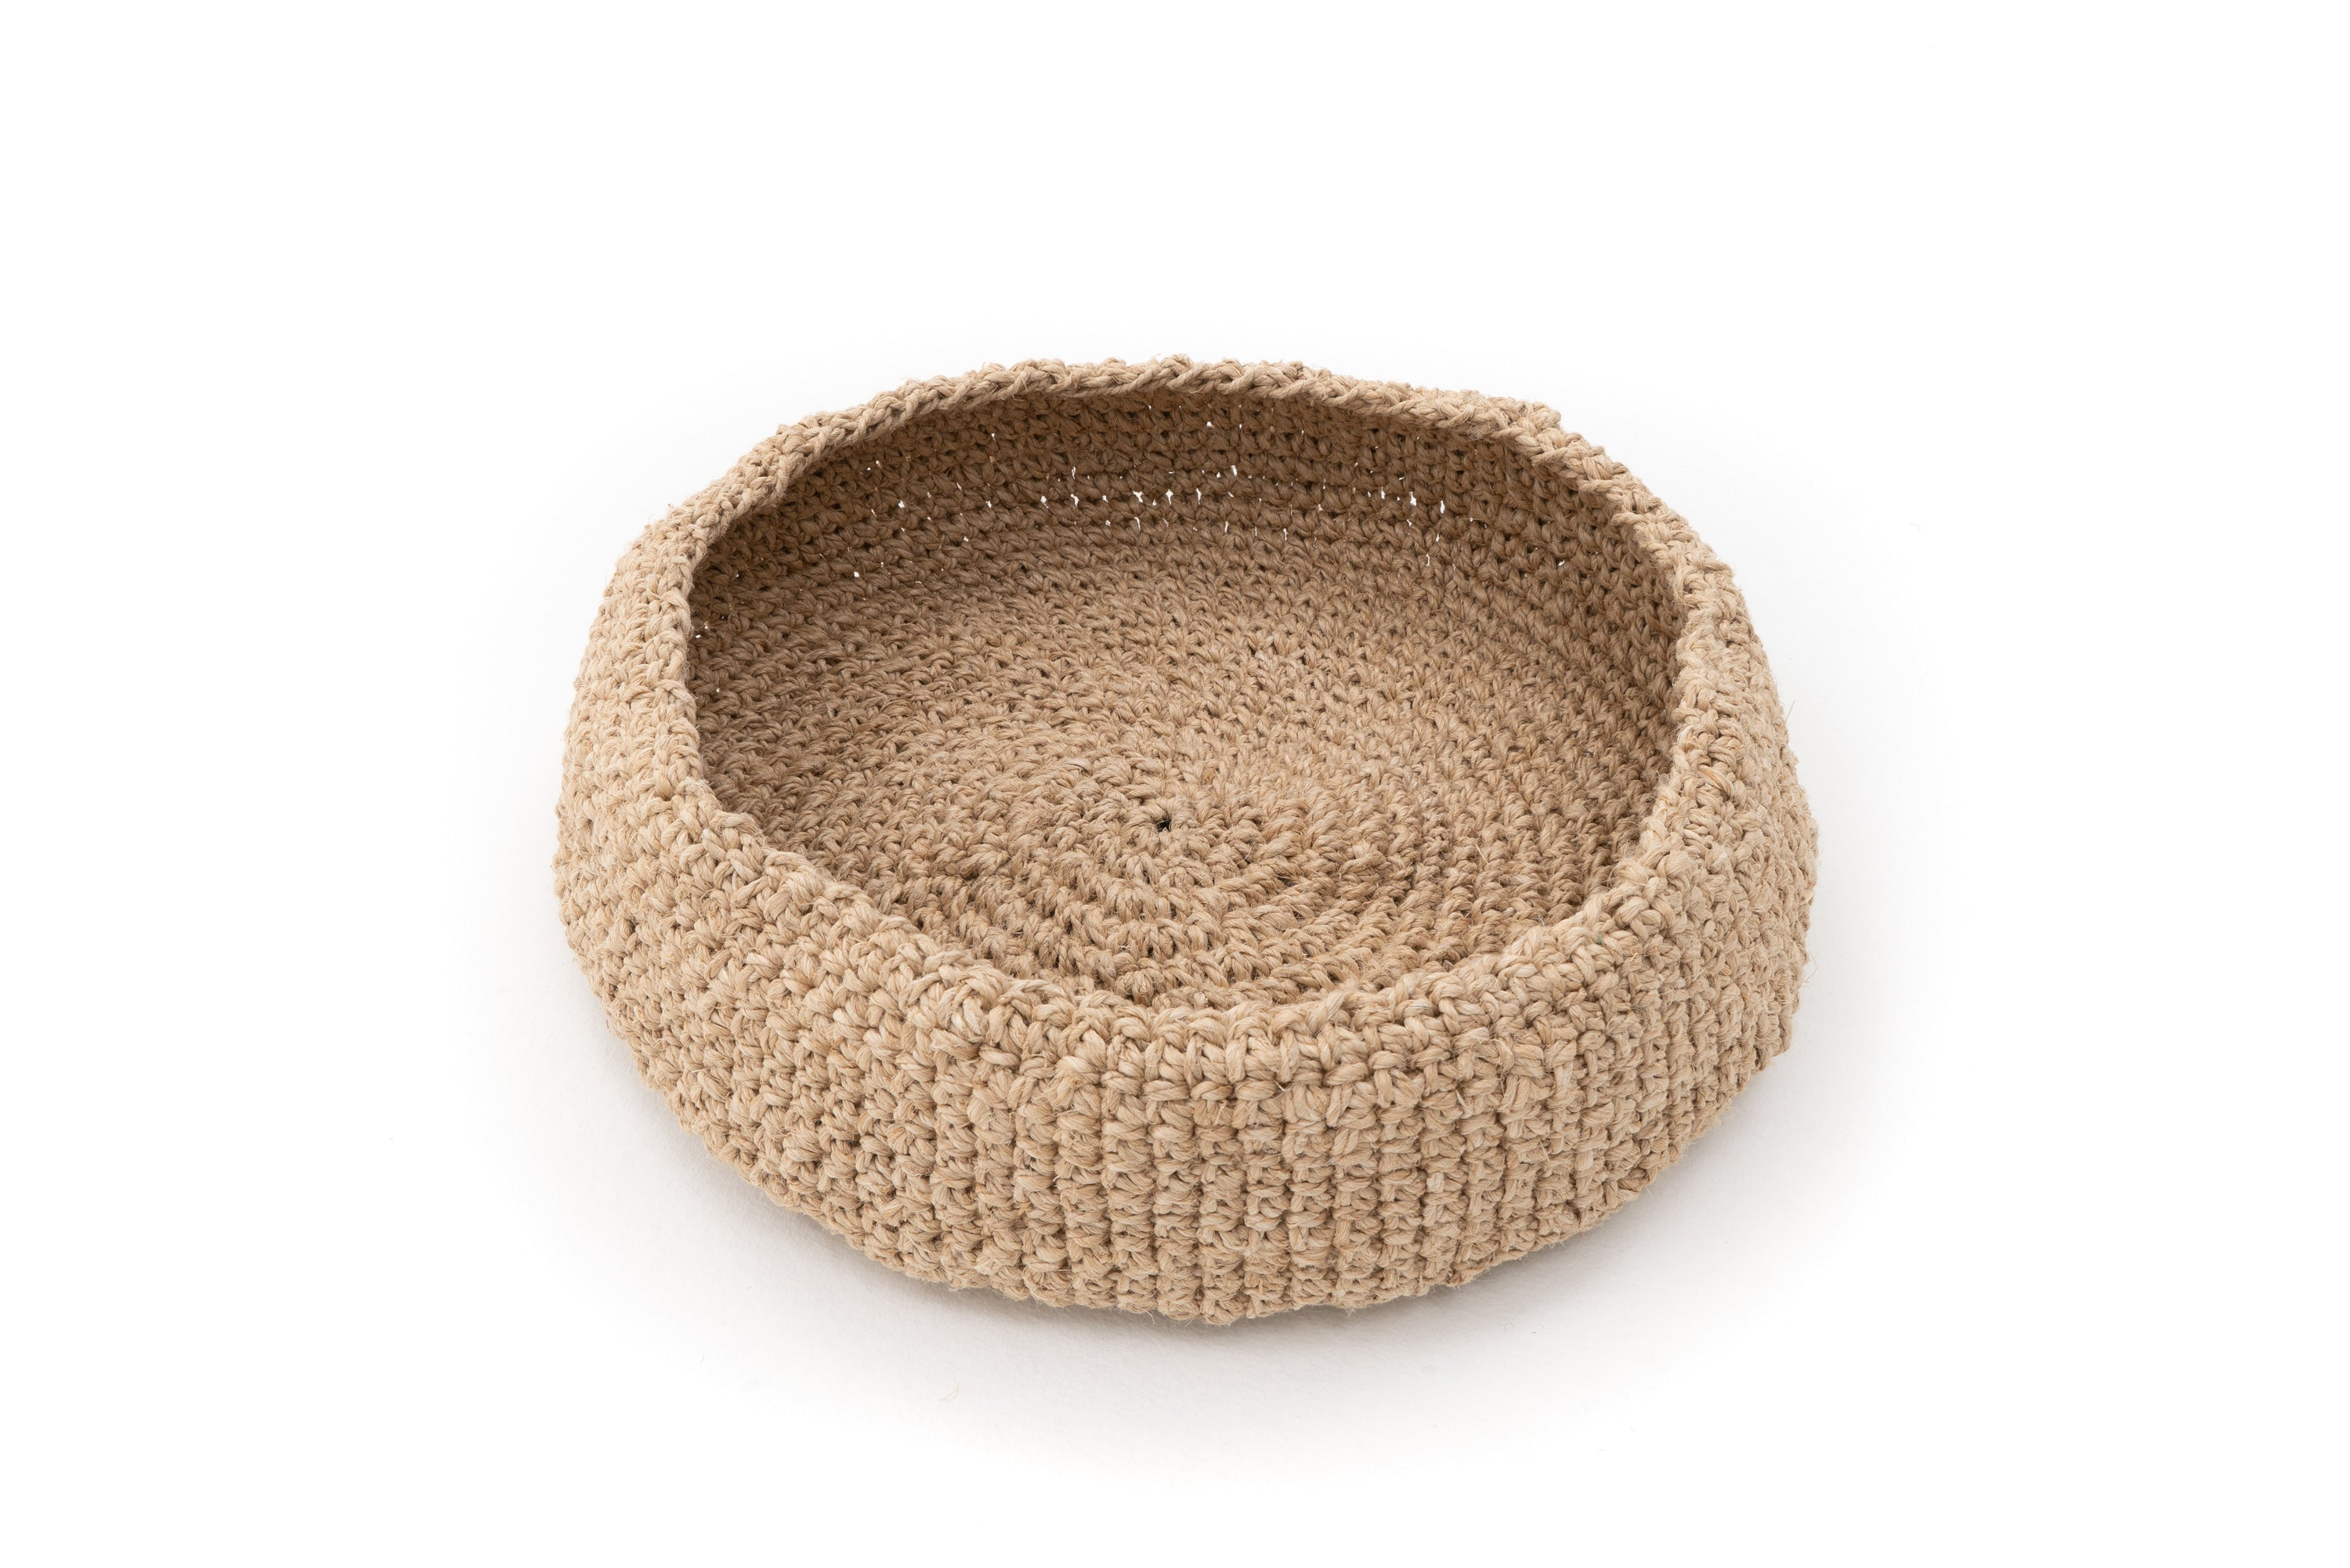 Hand Crocheted Handspun Hemp Basket